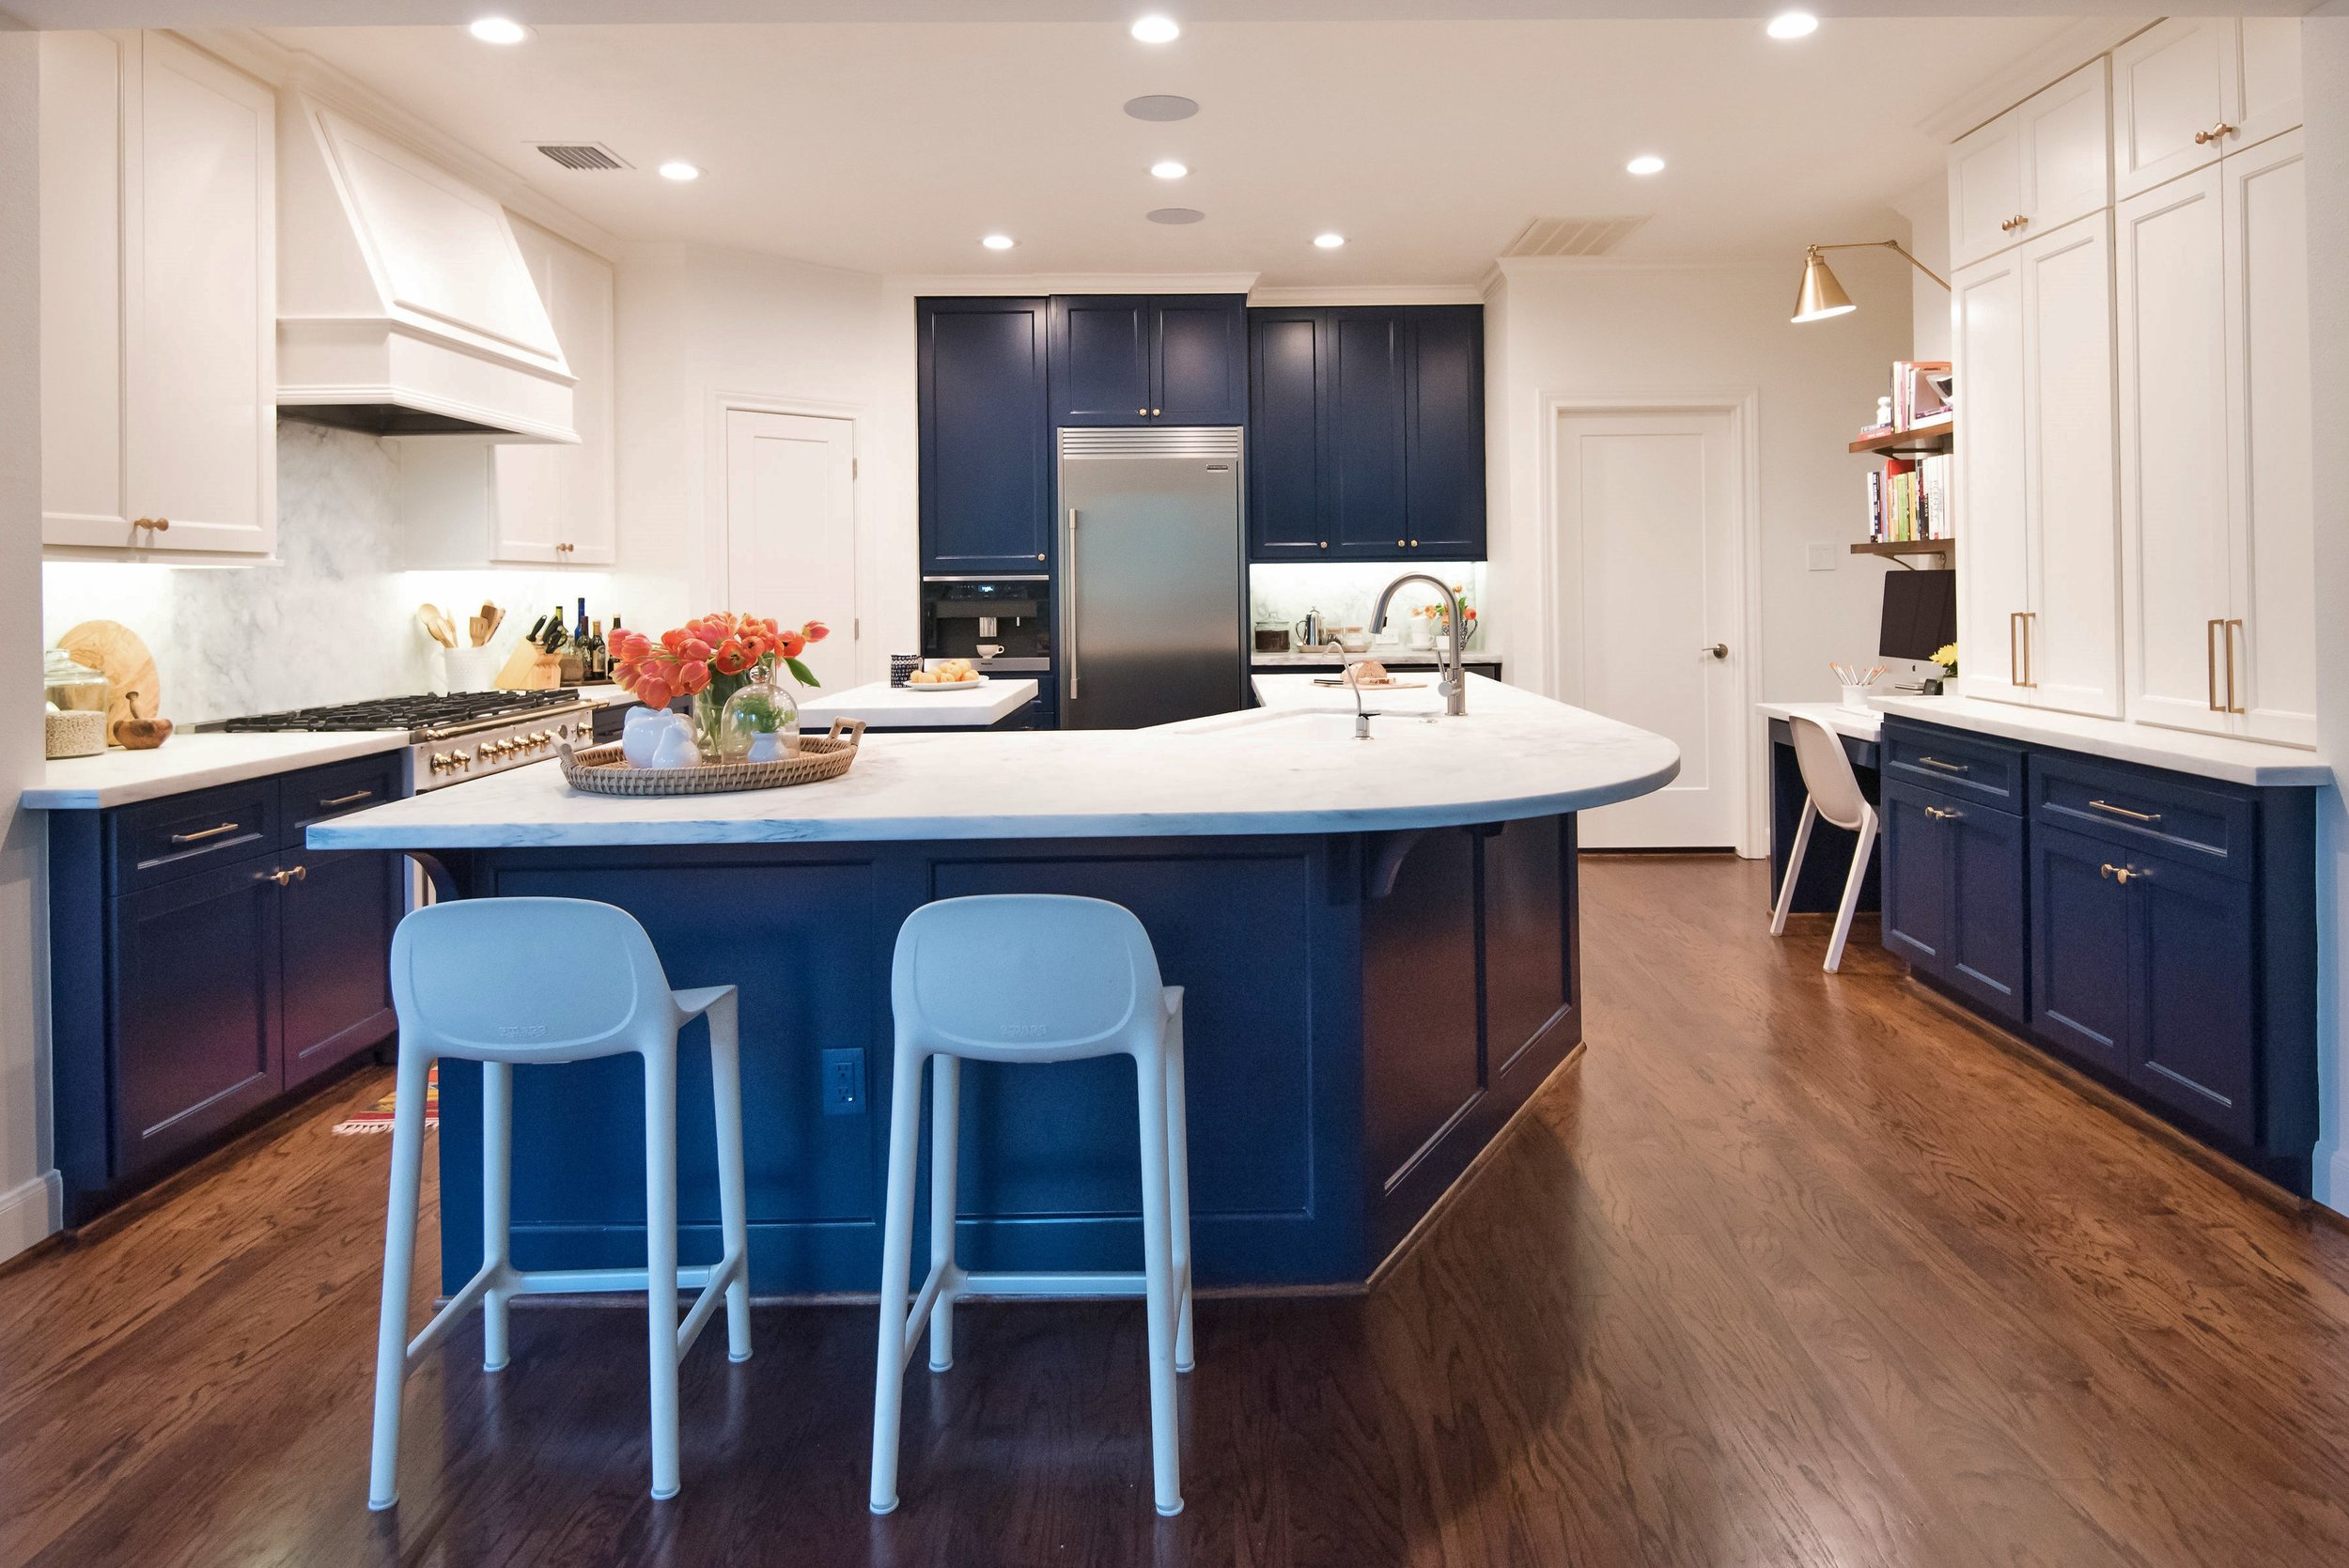 Navy and White Kitchen Remodel After - Carla Aston Designer, Lauren Giles Photographer